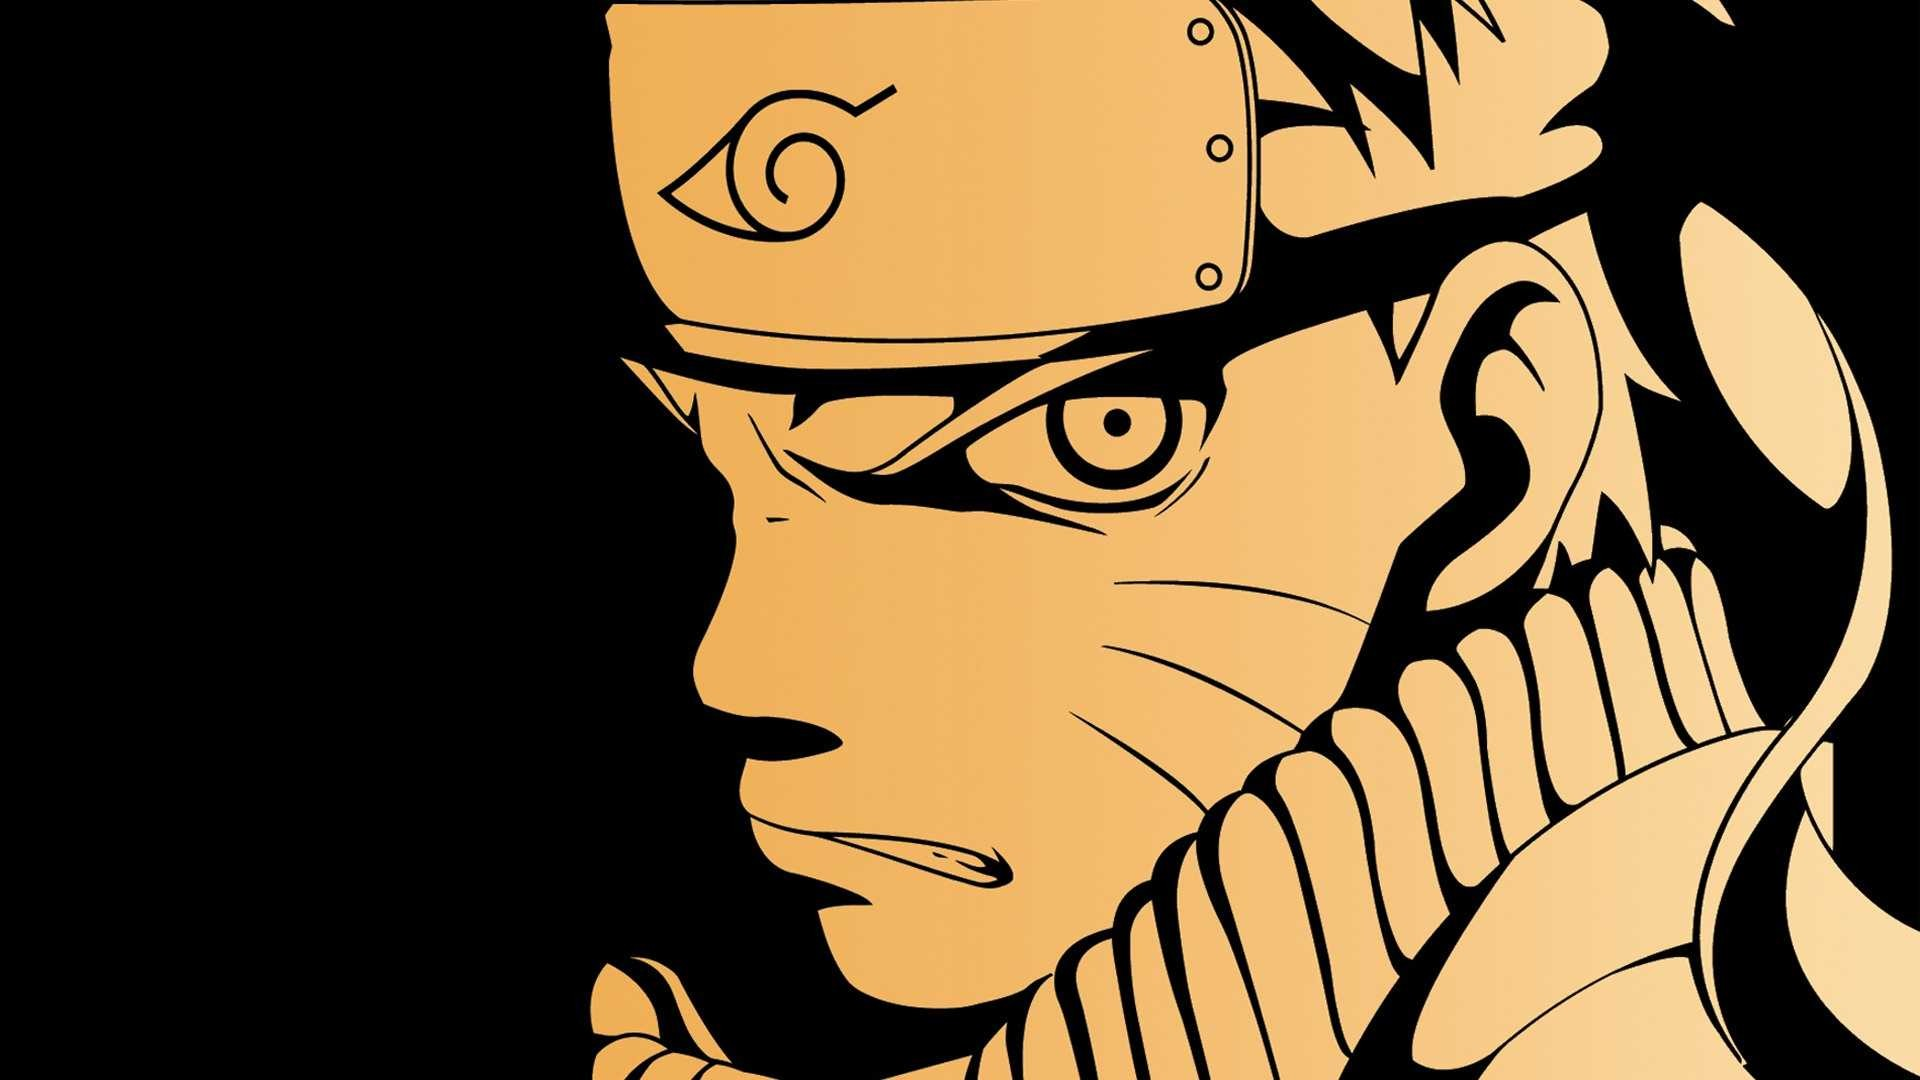 Wallpapers De Naruto Shippuden Hd 2018 57 Pictures